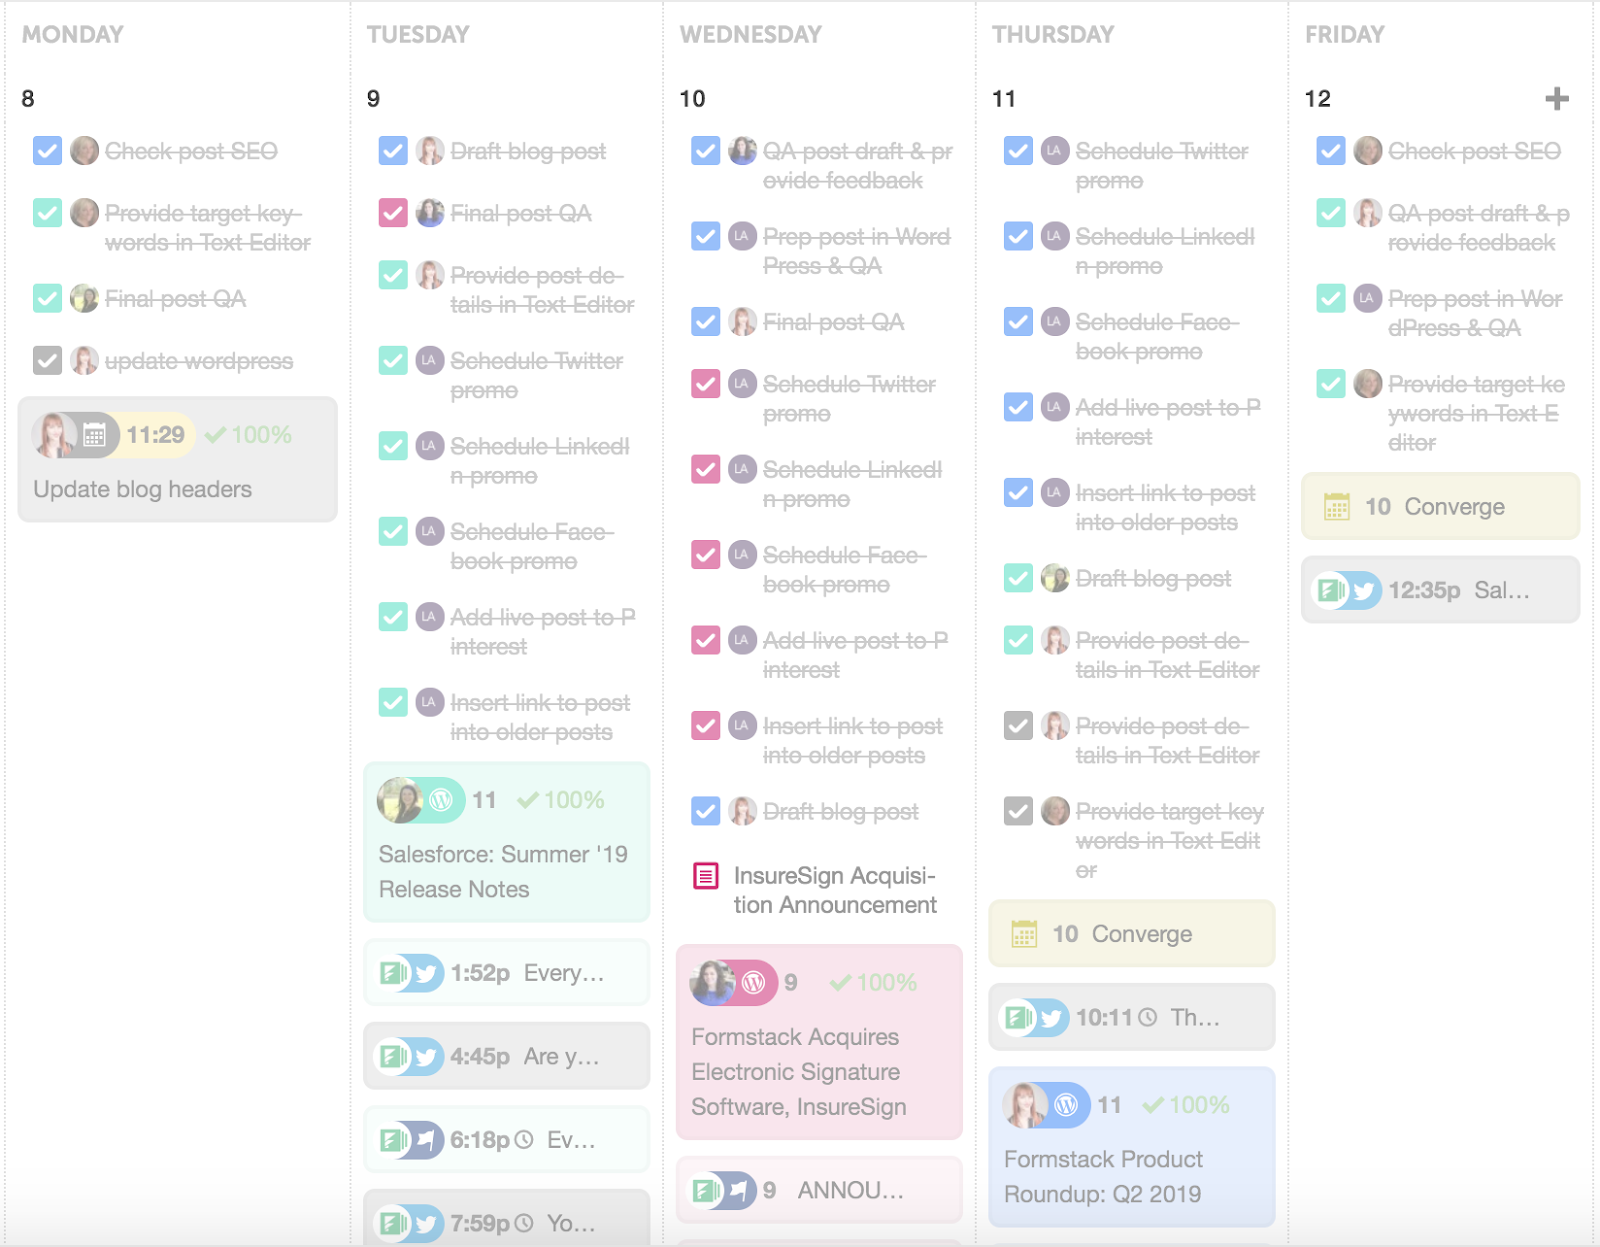 The CoSchedule calendar is one of our favorite content marketing tools.